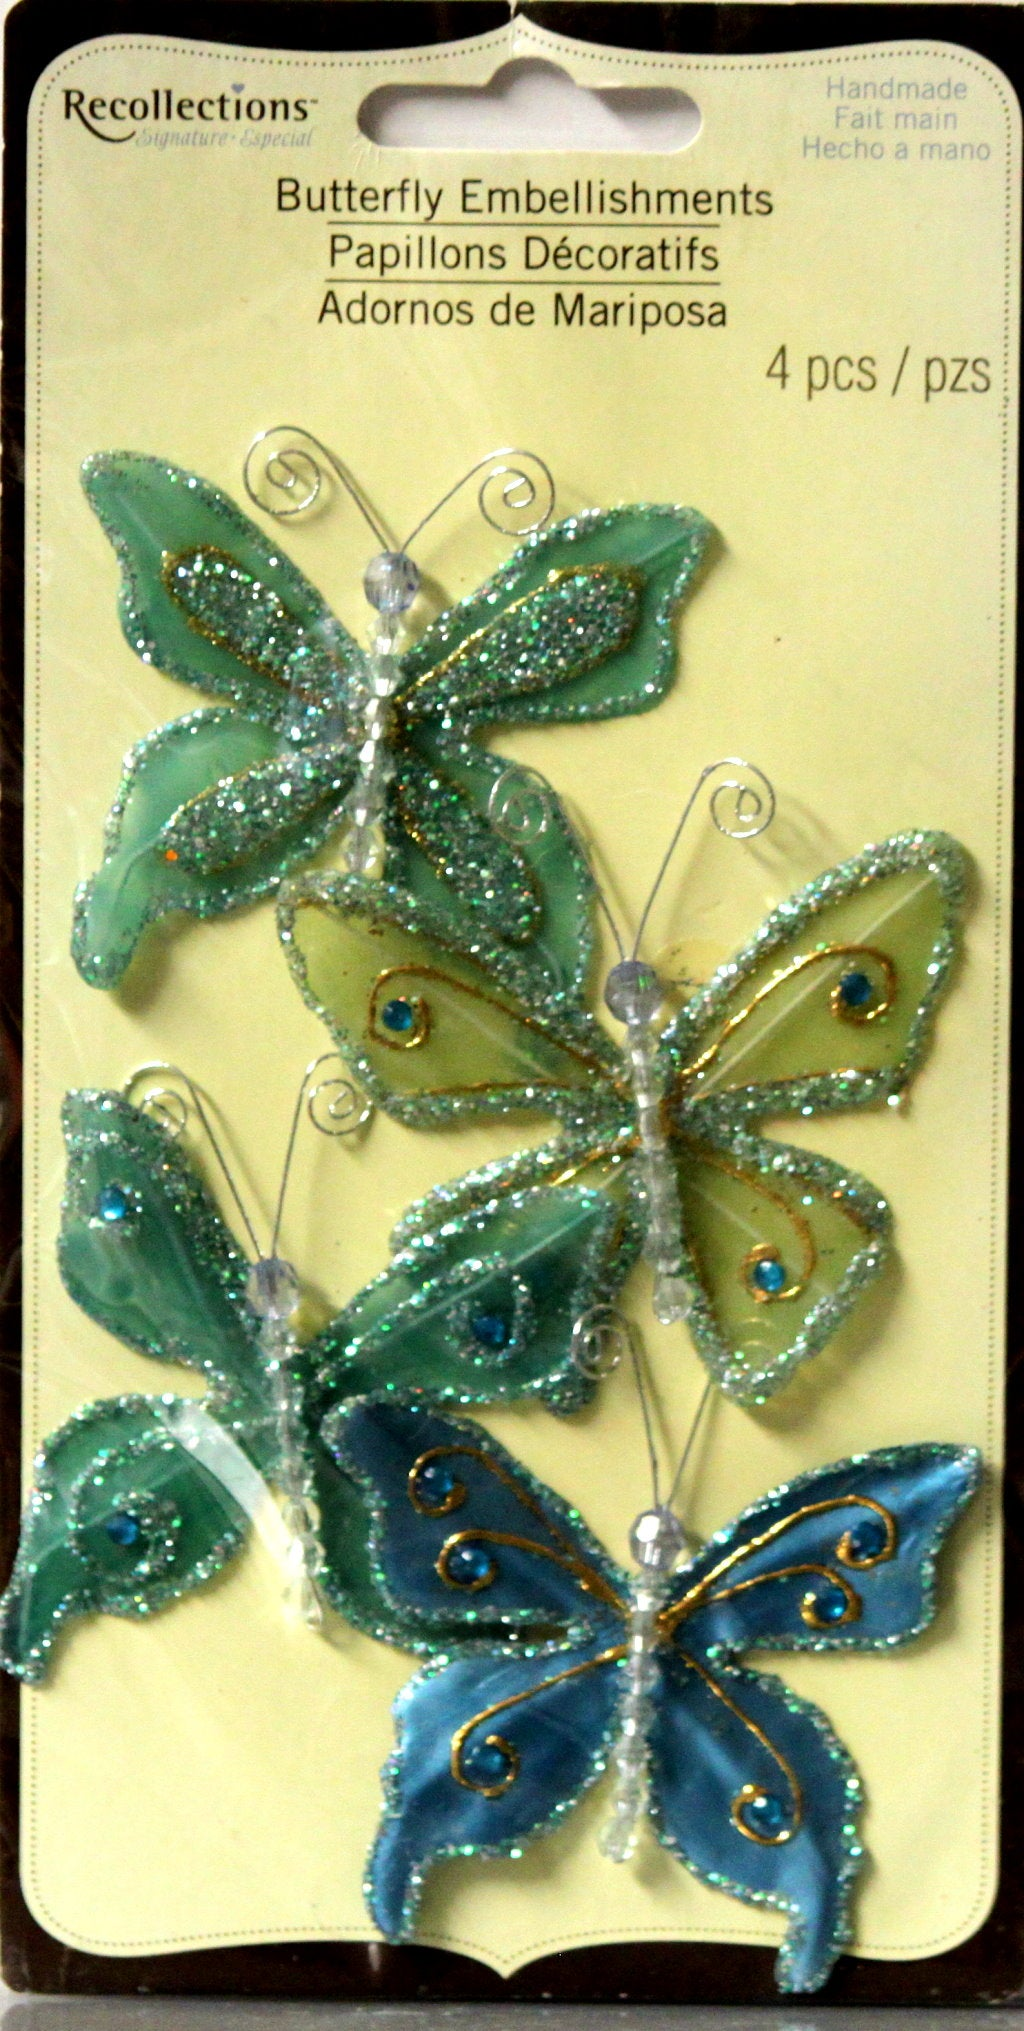 Recollections Butterfly Shades of Blue/Green Embellishments